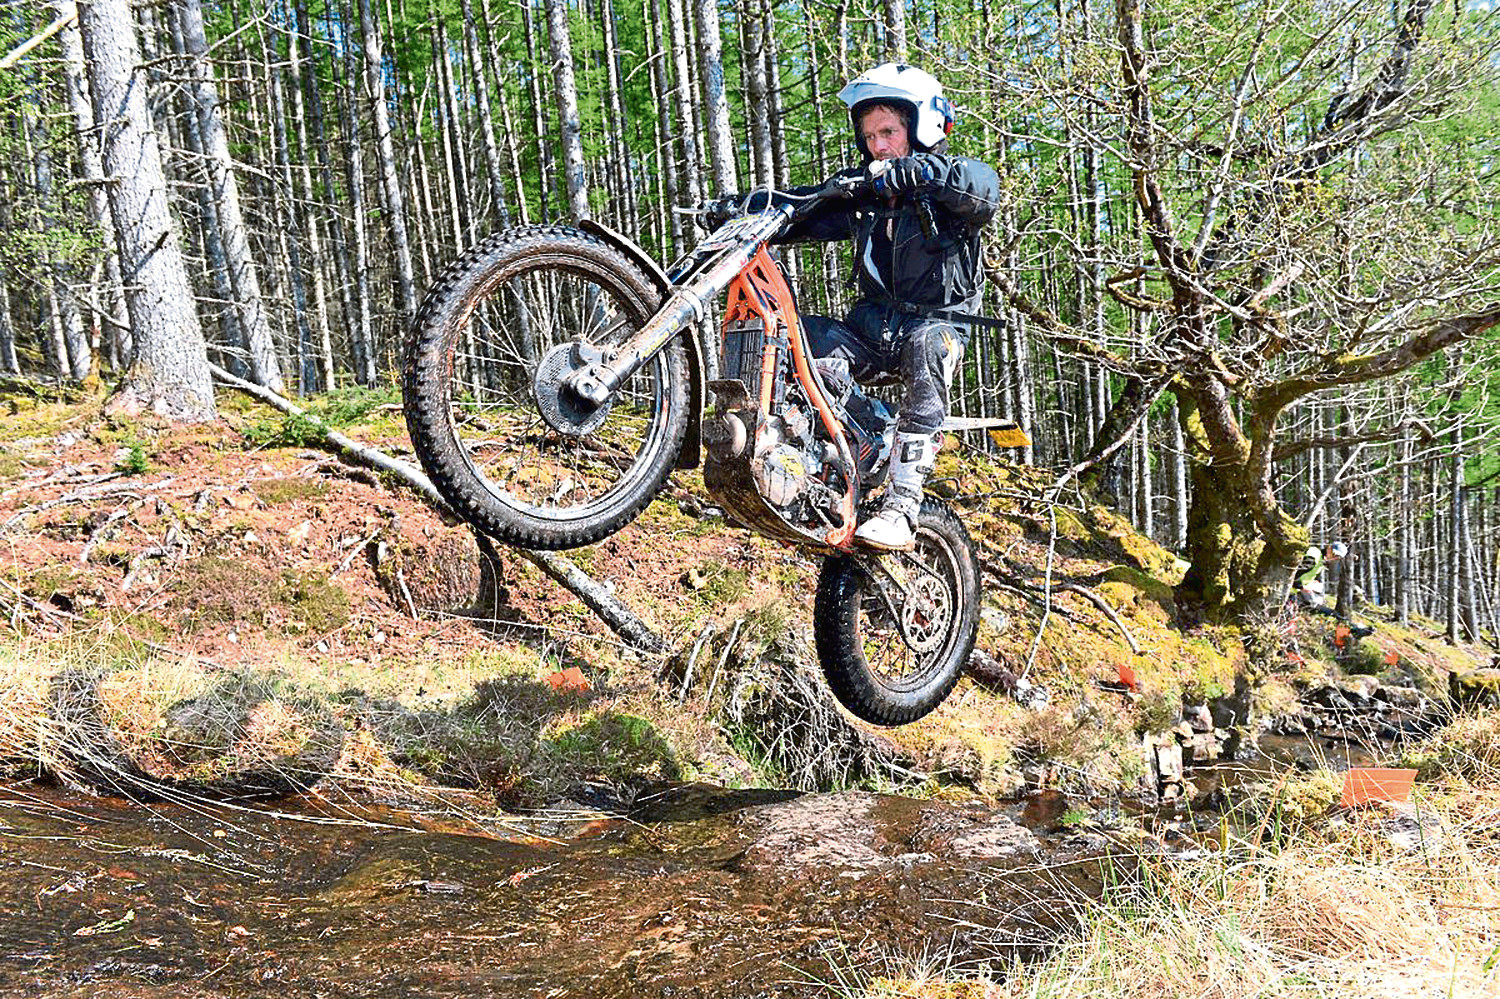 Action from the Scottish Six Days Trials.